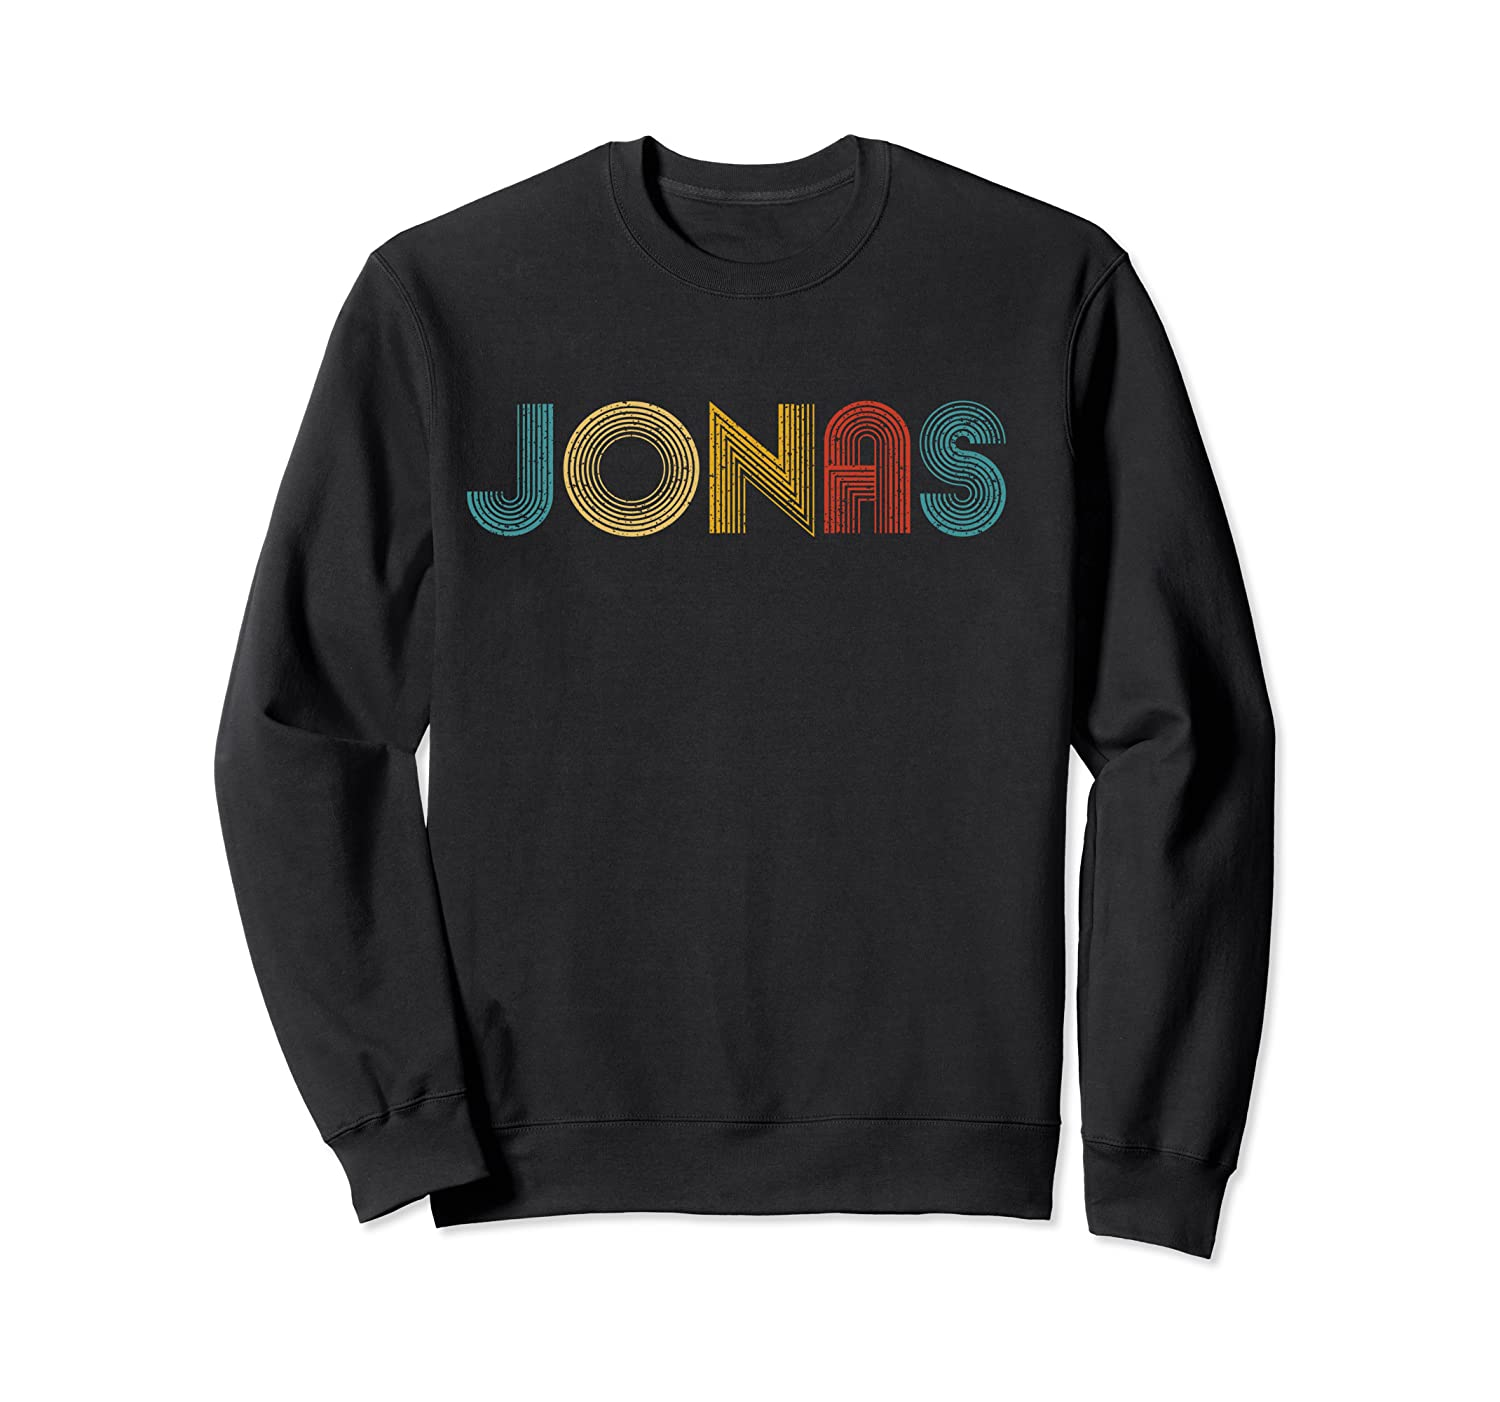 Jonas First Given Name Pride Vintage Distressed T Shirt Crewneck Sweater